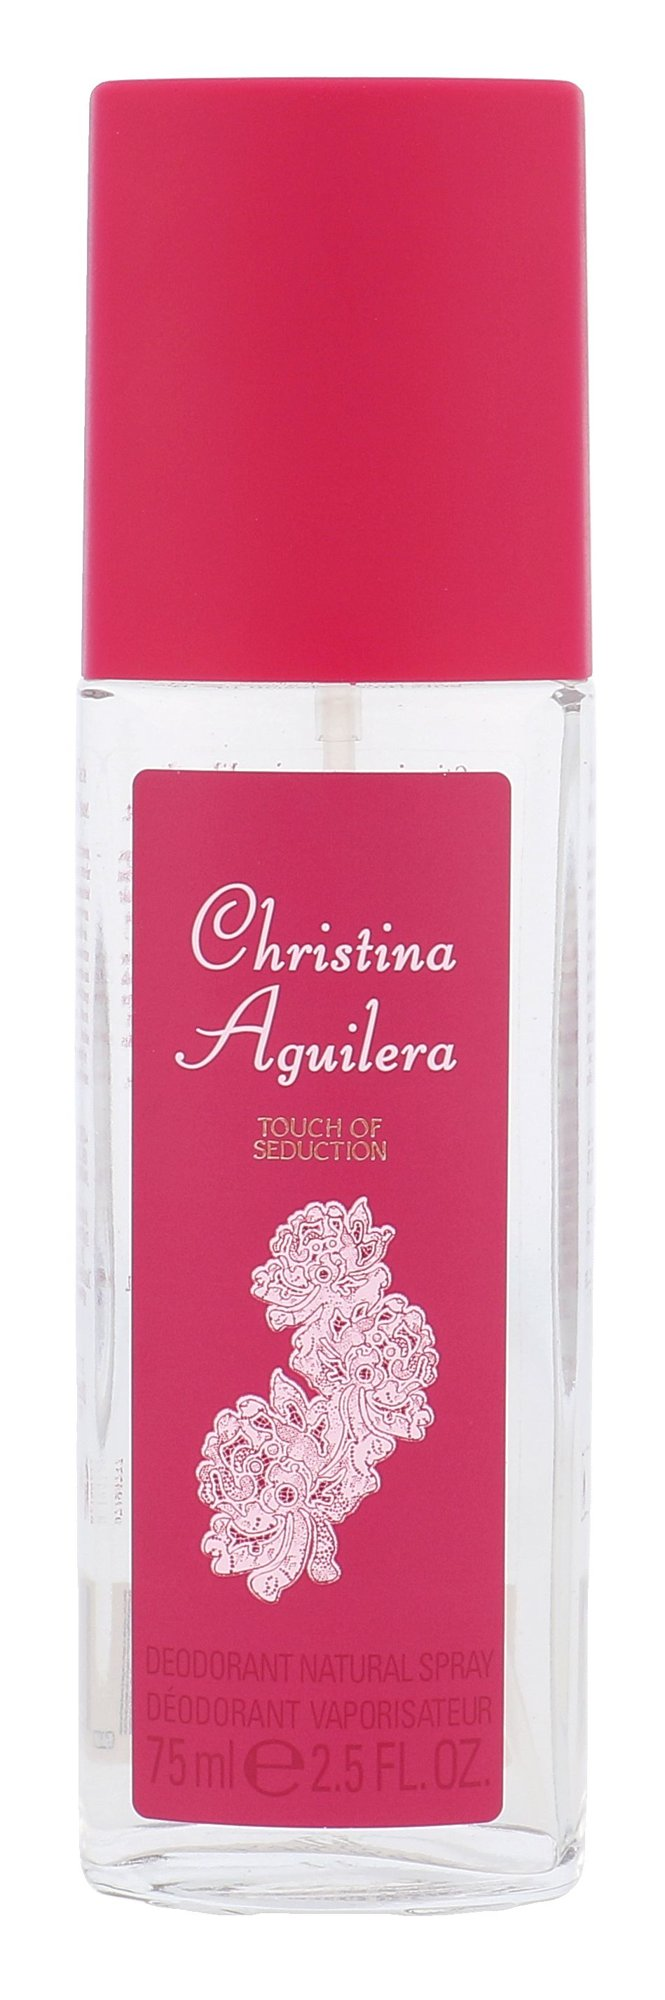 Dezodorantas Christina Aguilera Touch of Seduction